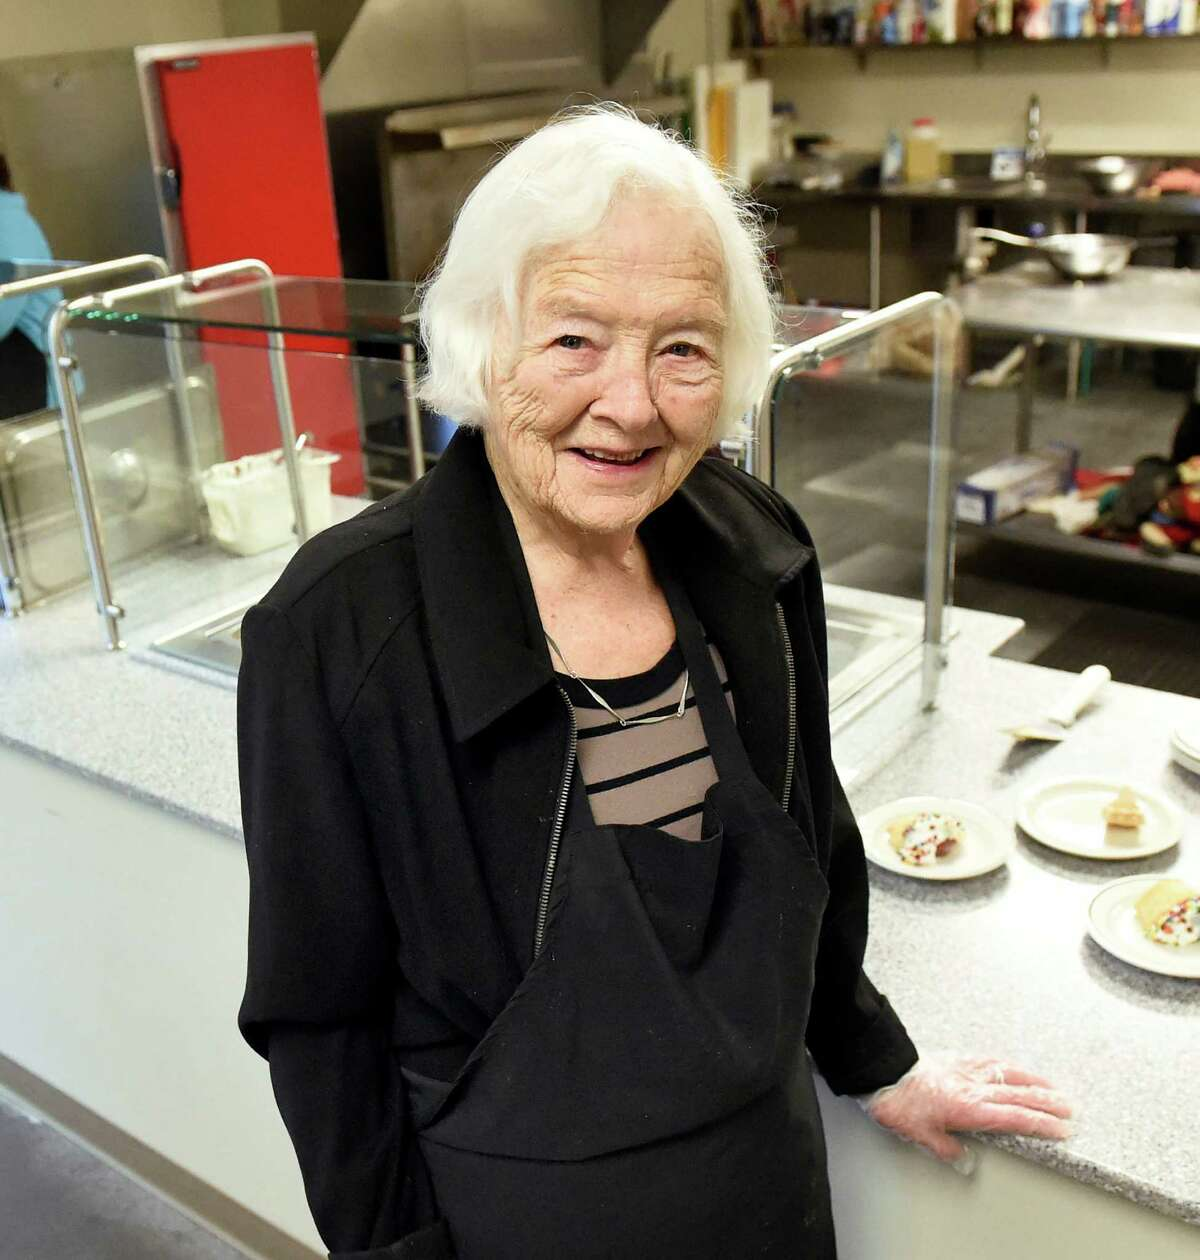 Jefferson award finalist Mary Jane Smith helps serve lunch on Wednesday, Feb. 3, 2016, at Unity House in Troy, N.Y. (Cindy Schultz / Times Union)